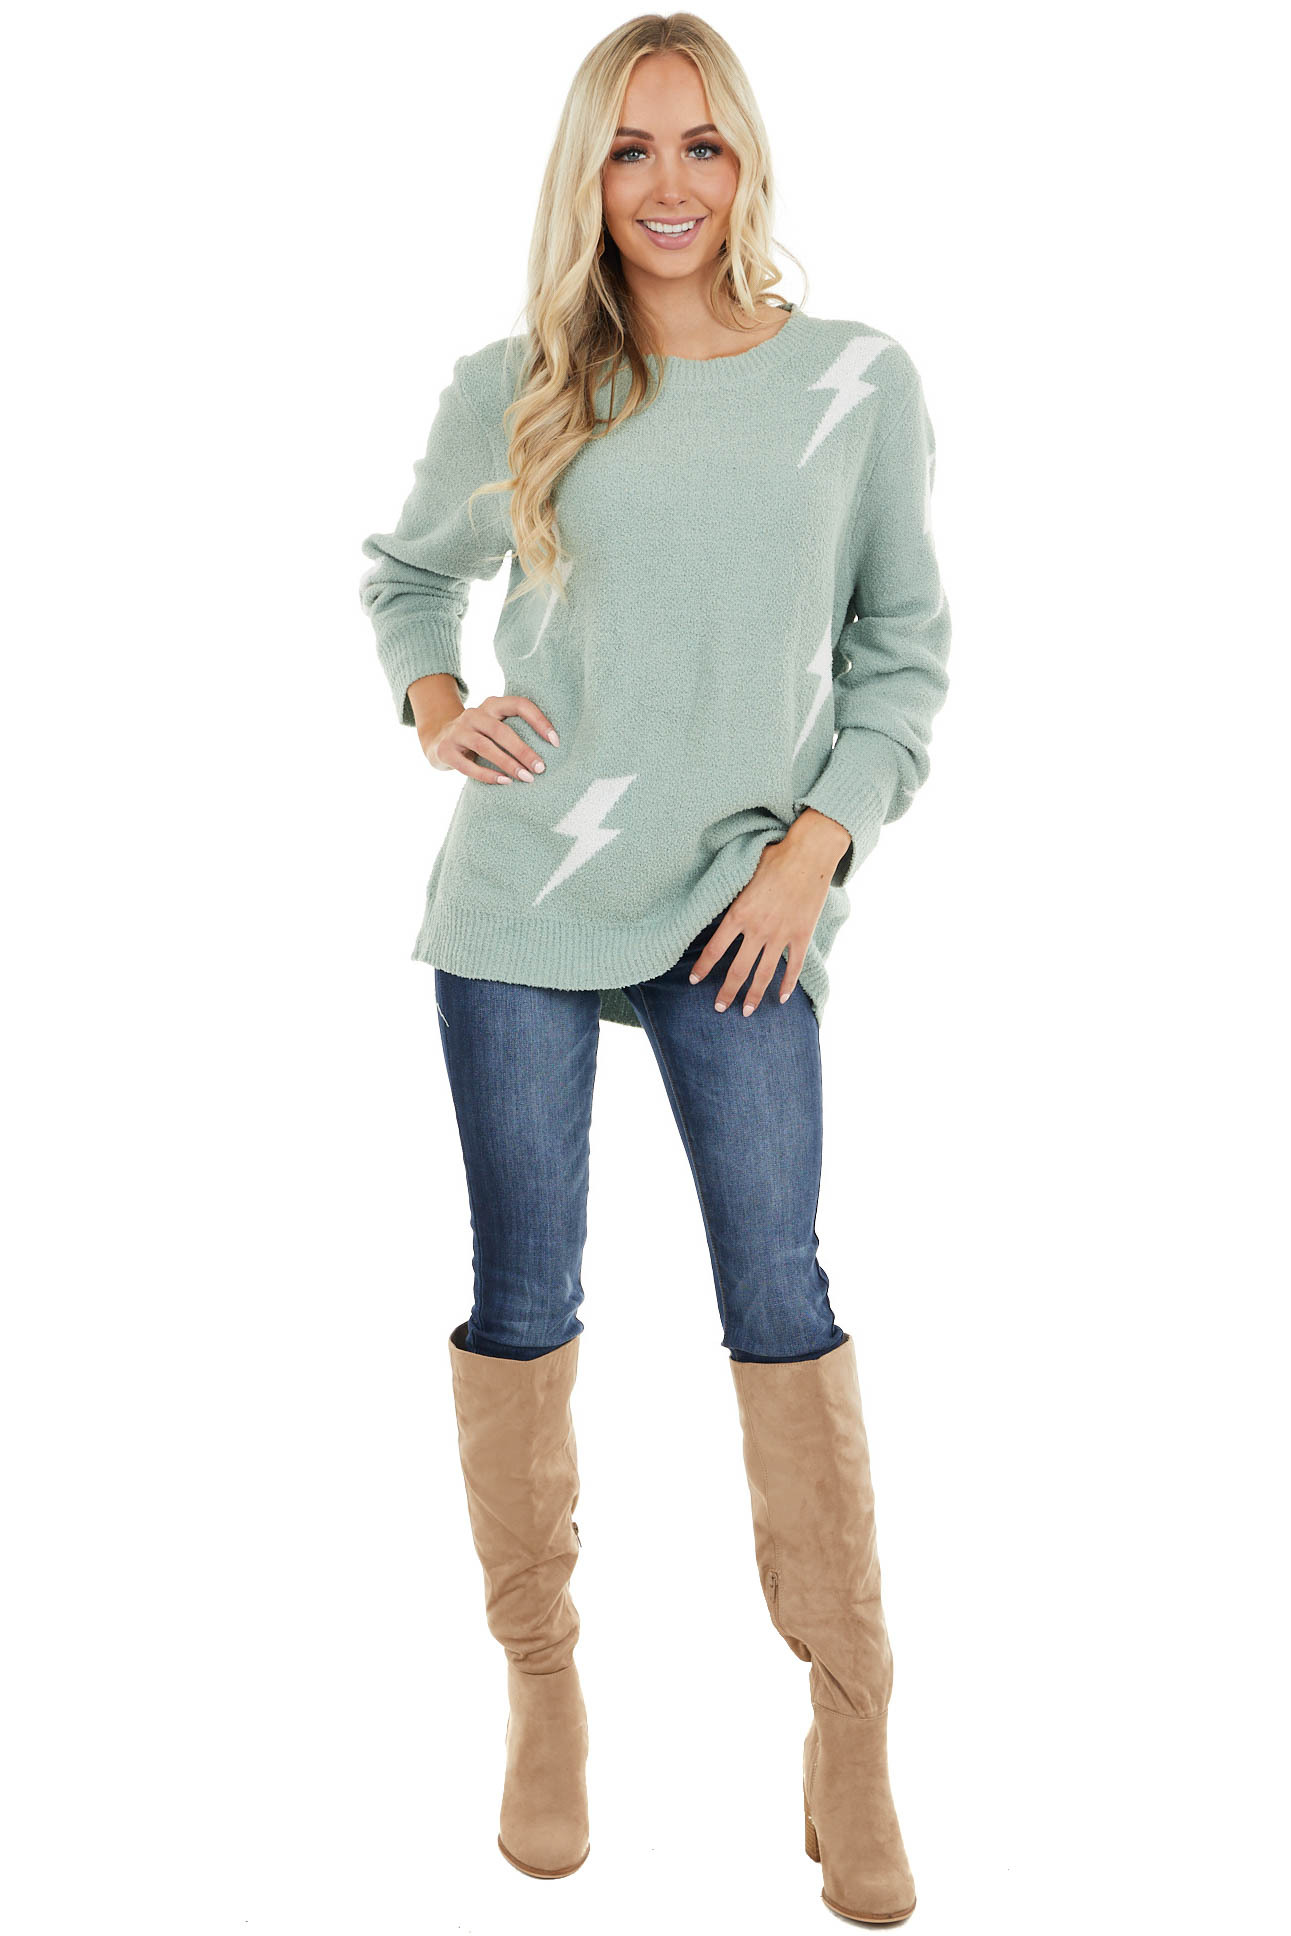 Sage Super Soft Knit Sweater with Lightning Bolt Print